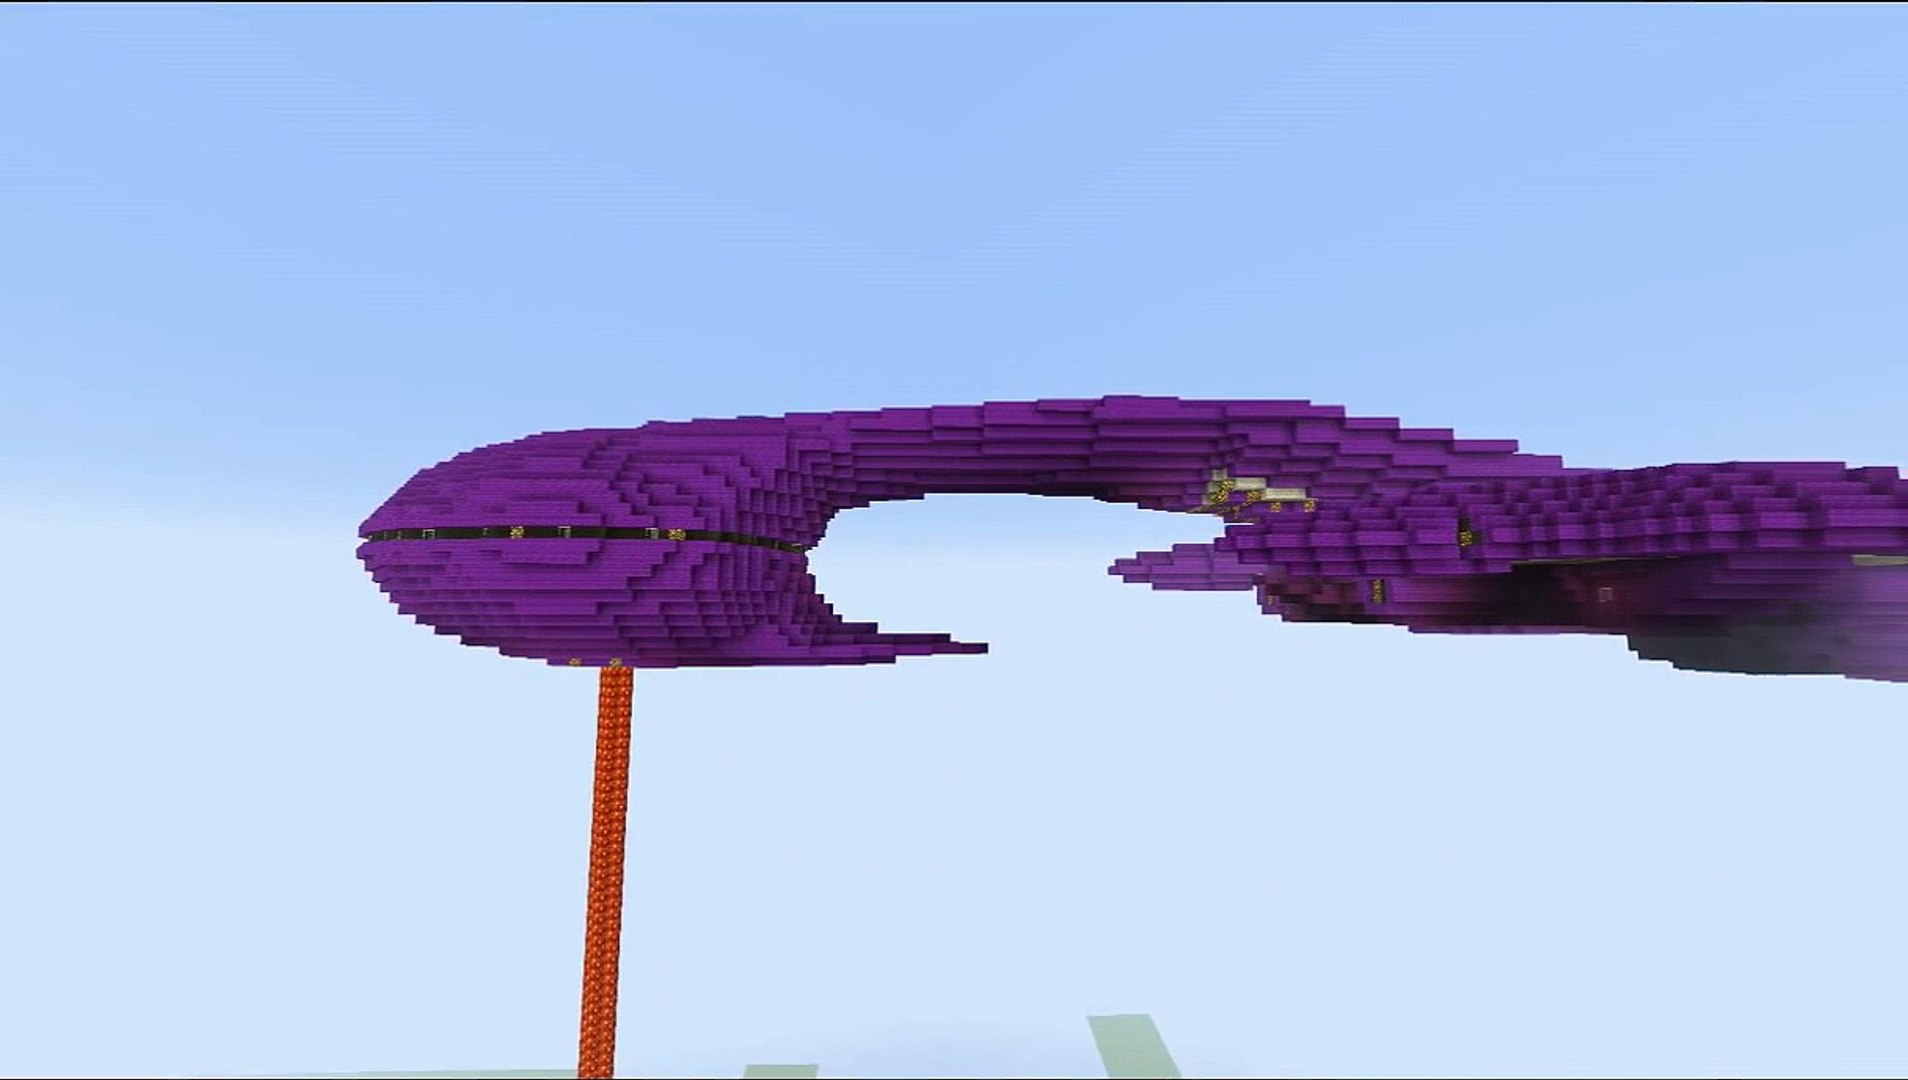 Minecraft-Halo Covenant Assault Carrier